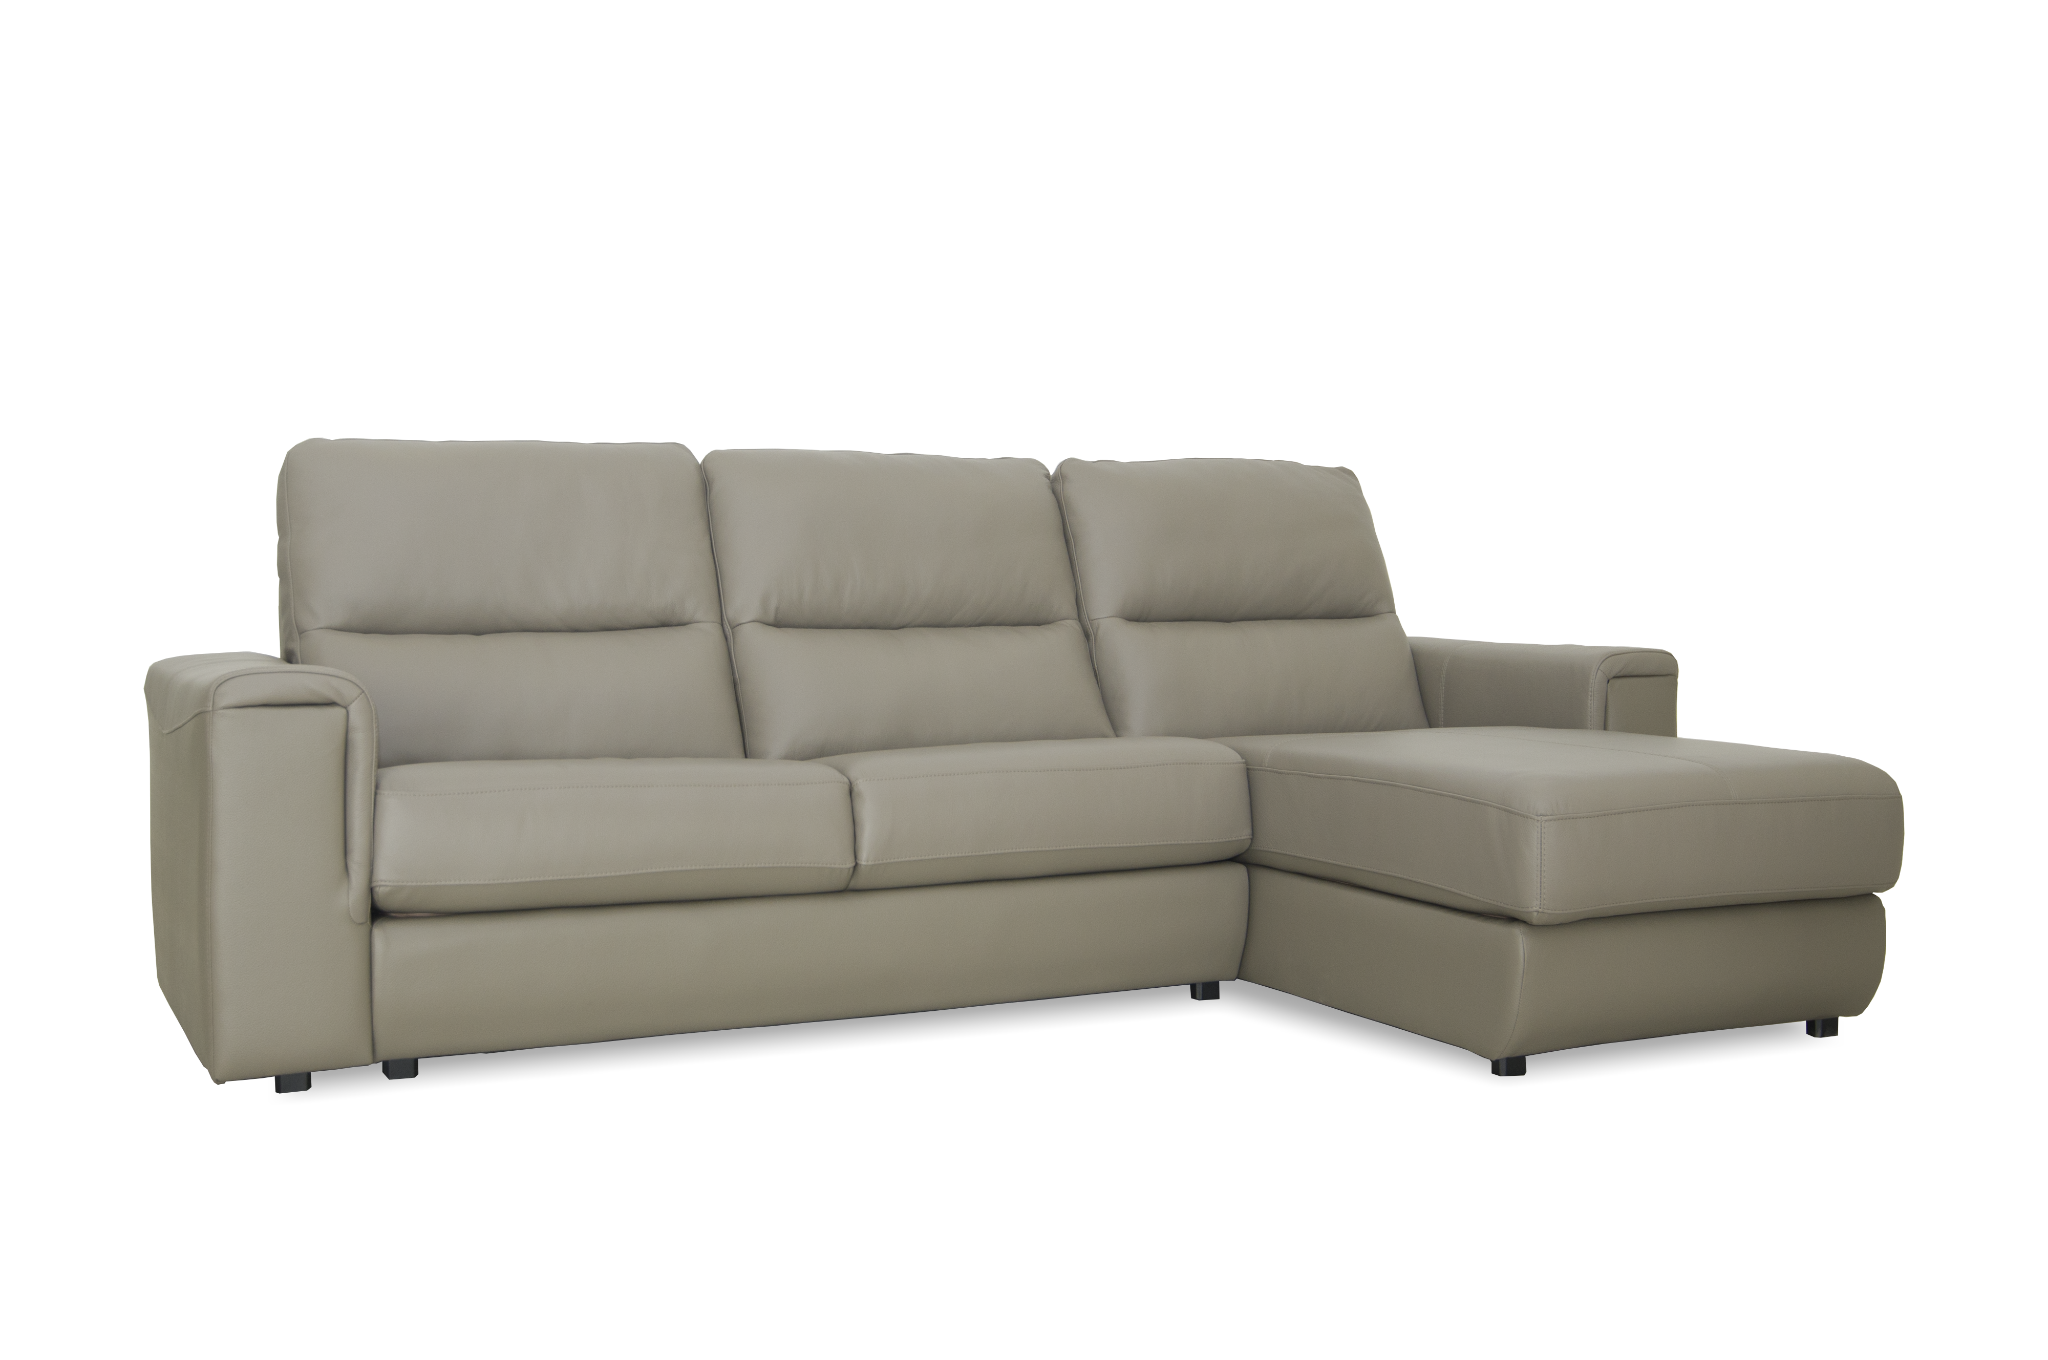 Sofa da nhập khẩu Babakagu N-QUEEN Dark Brown 431